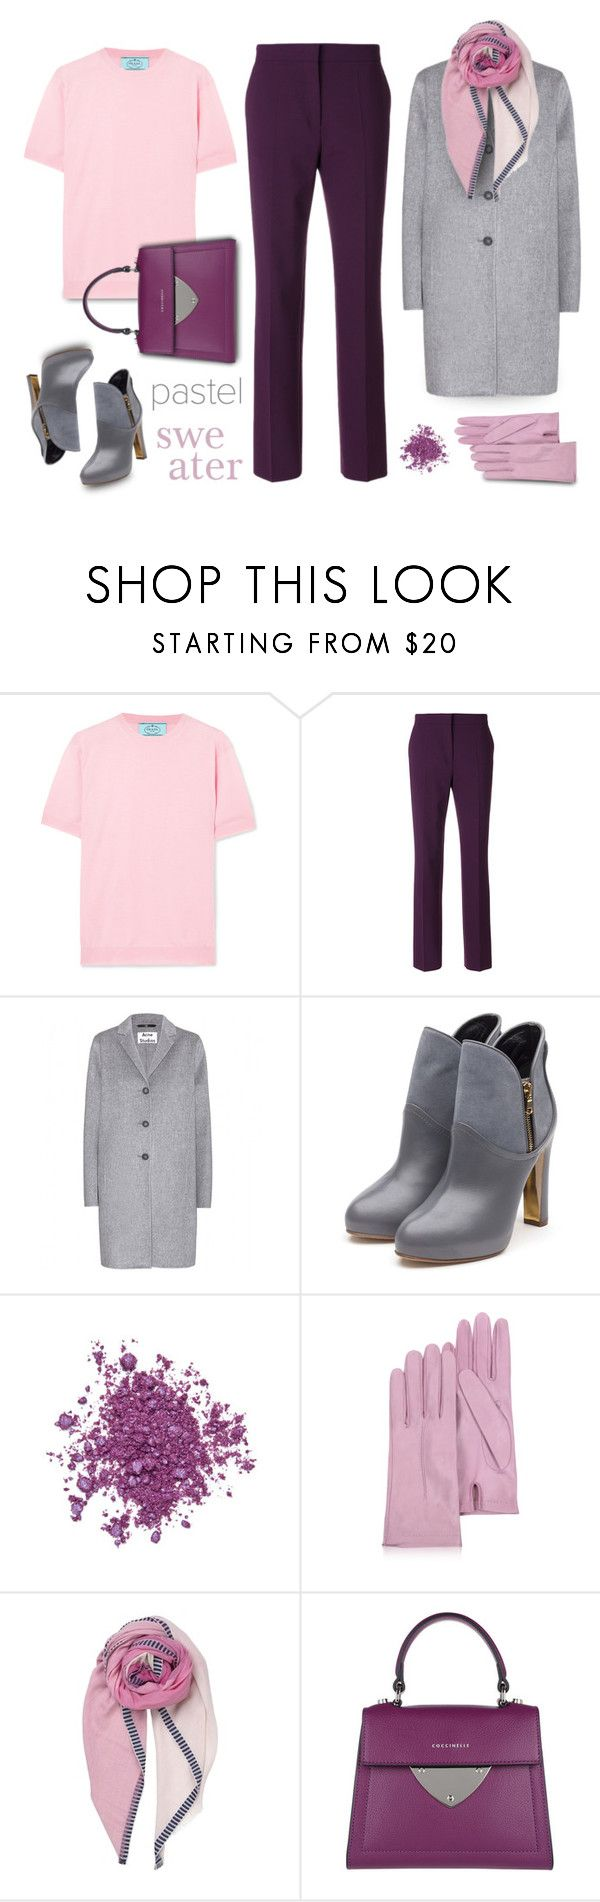 """Classy in pastel pink"" by muse-charming ❤ liked on Polyvore featuring Trilogy, Prada, Alberta Ferretti, Acne Studios, Rupert Sanderson, Urban Decay, Forzieri and Coccinelle"